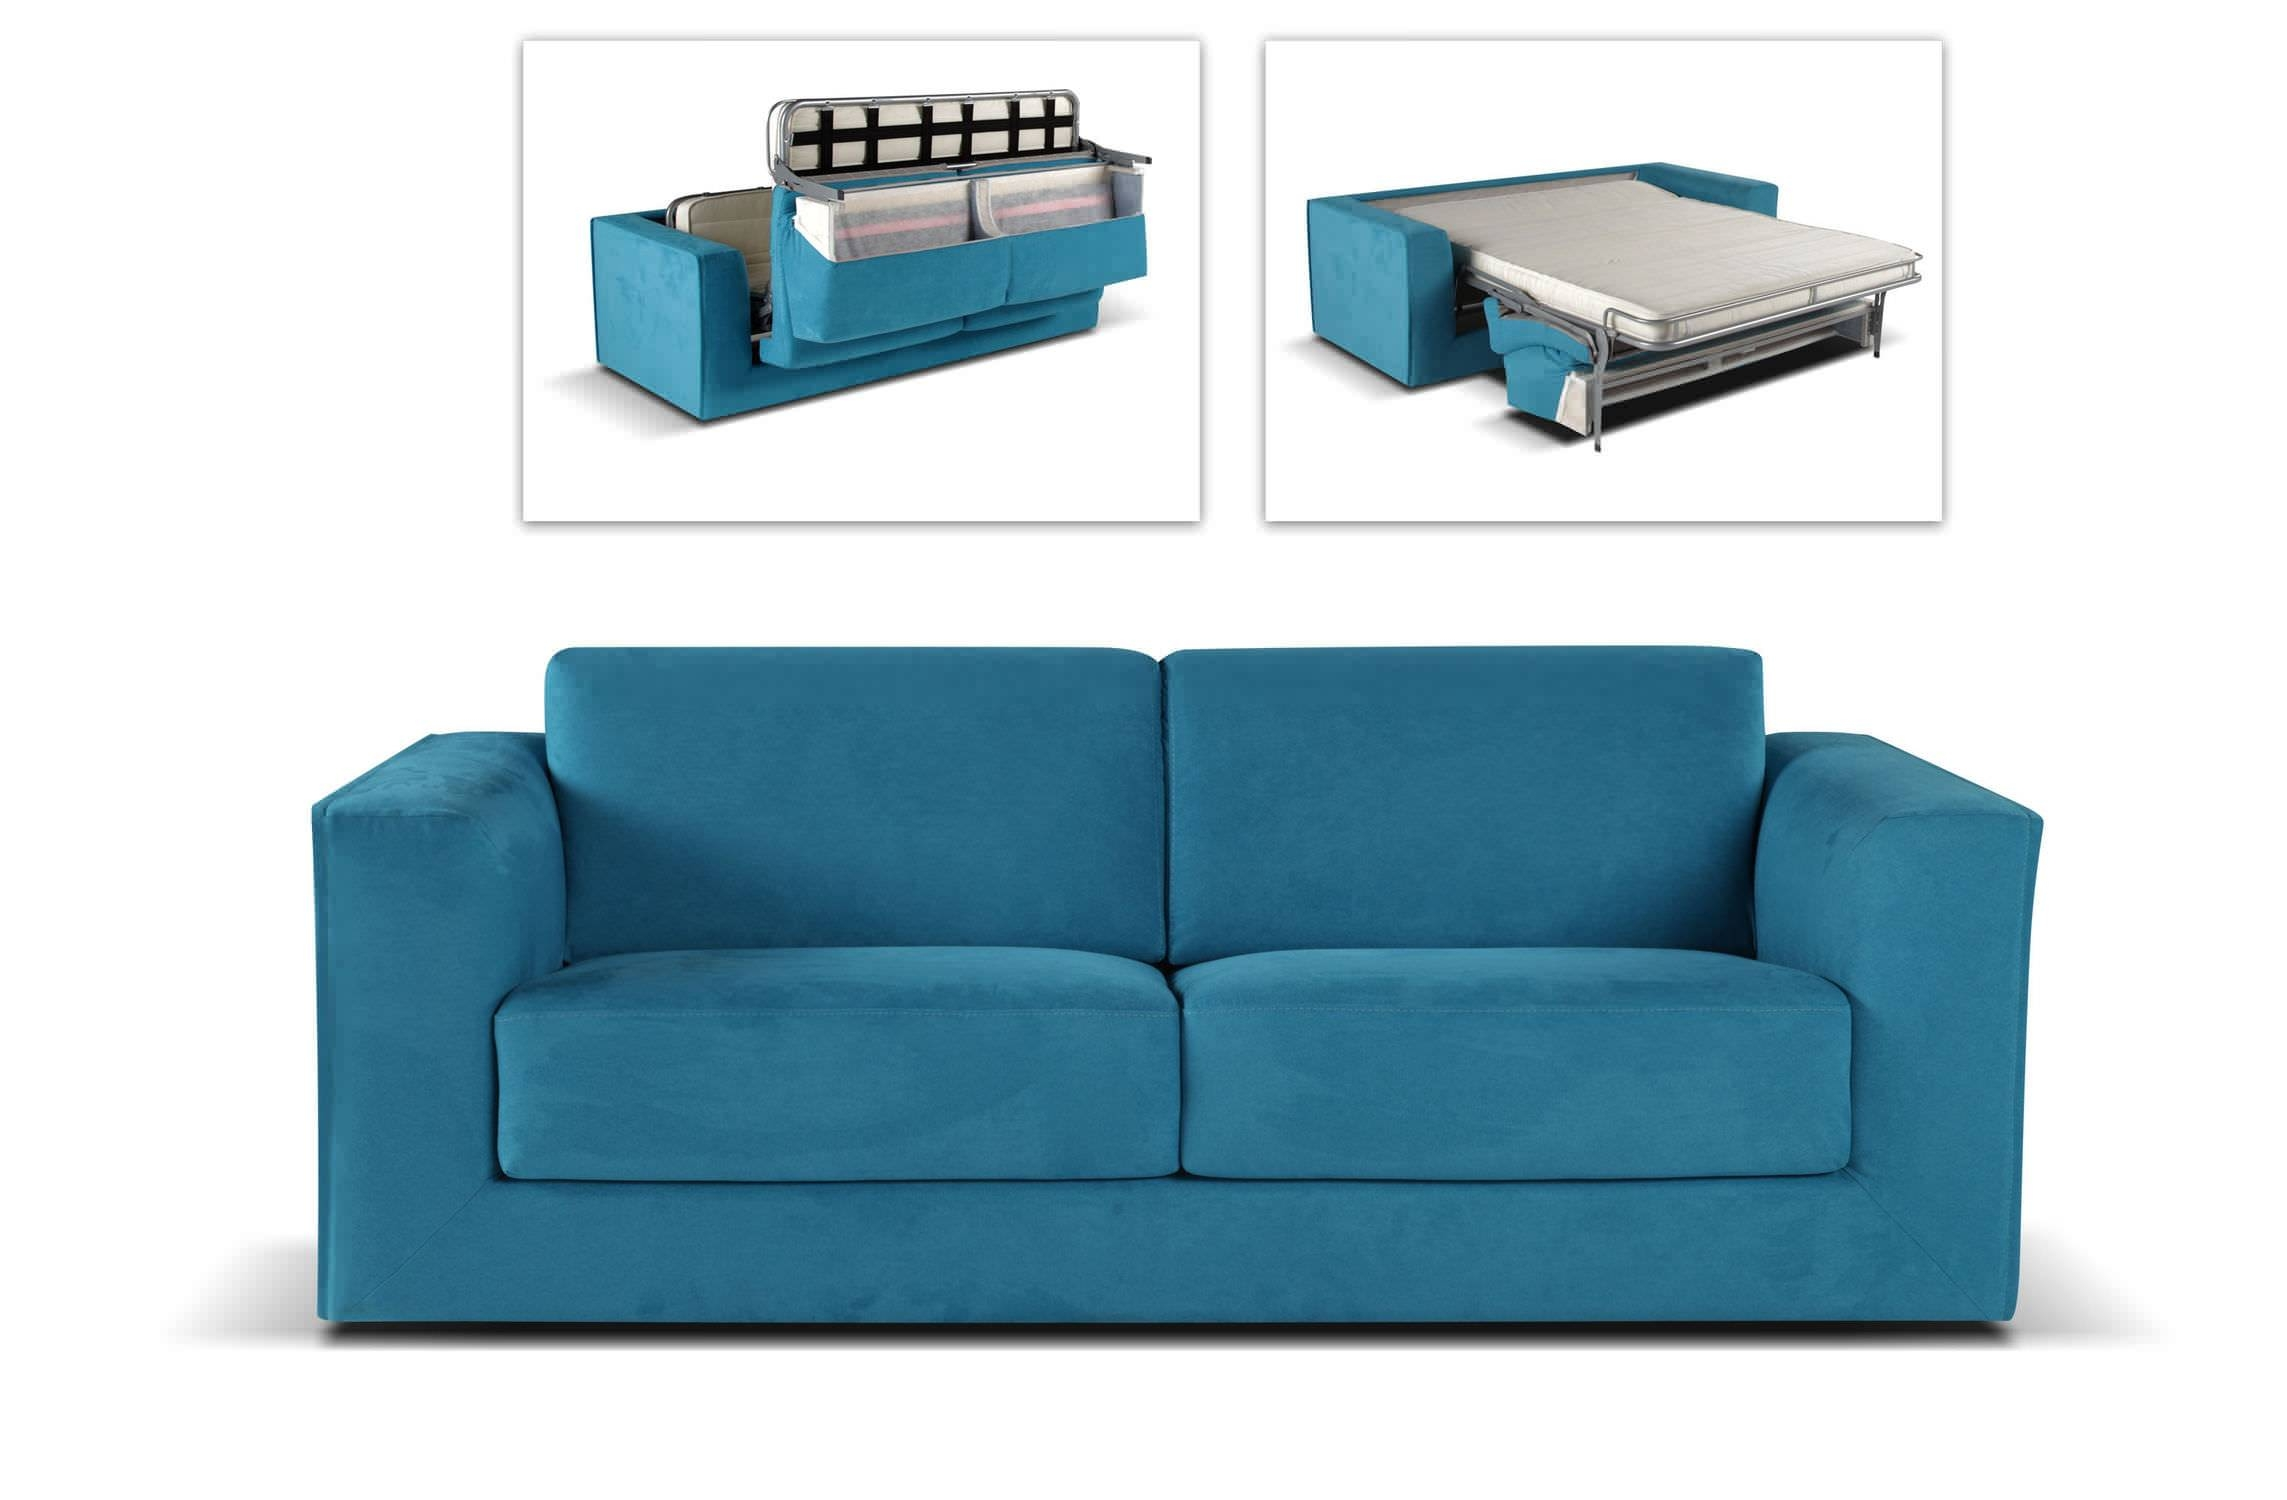 Furniture: Impressive Ikea Sofa Beds For Your Living Room — Mabas4 inside Single Sofa Beds (Image 5 of 30)